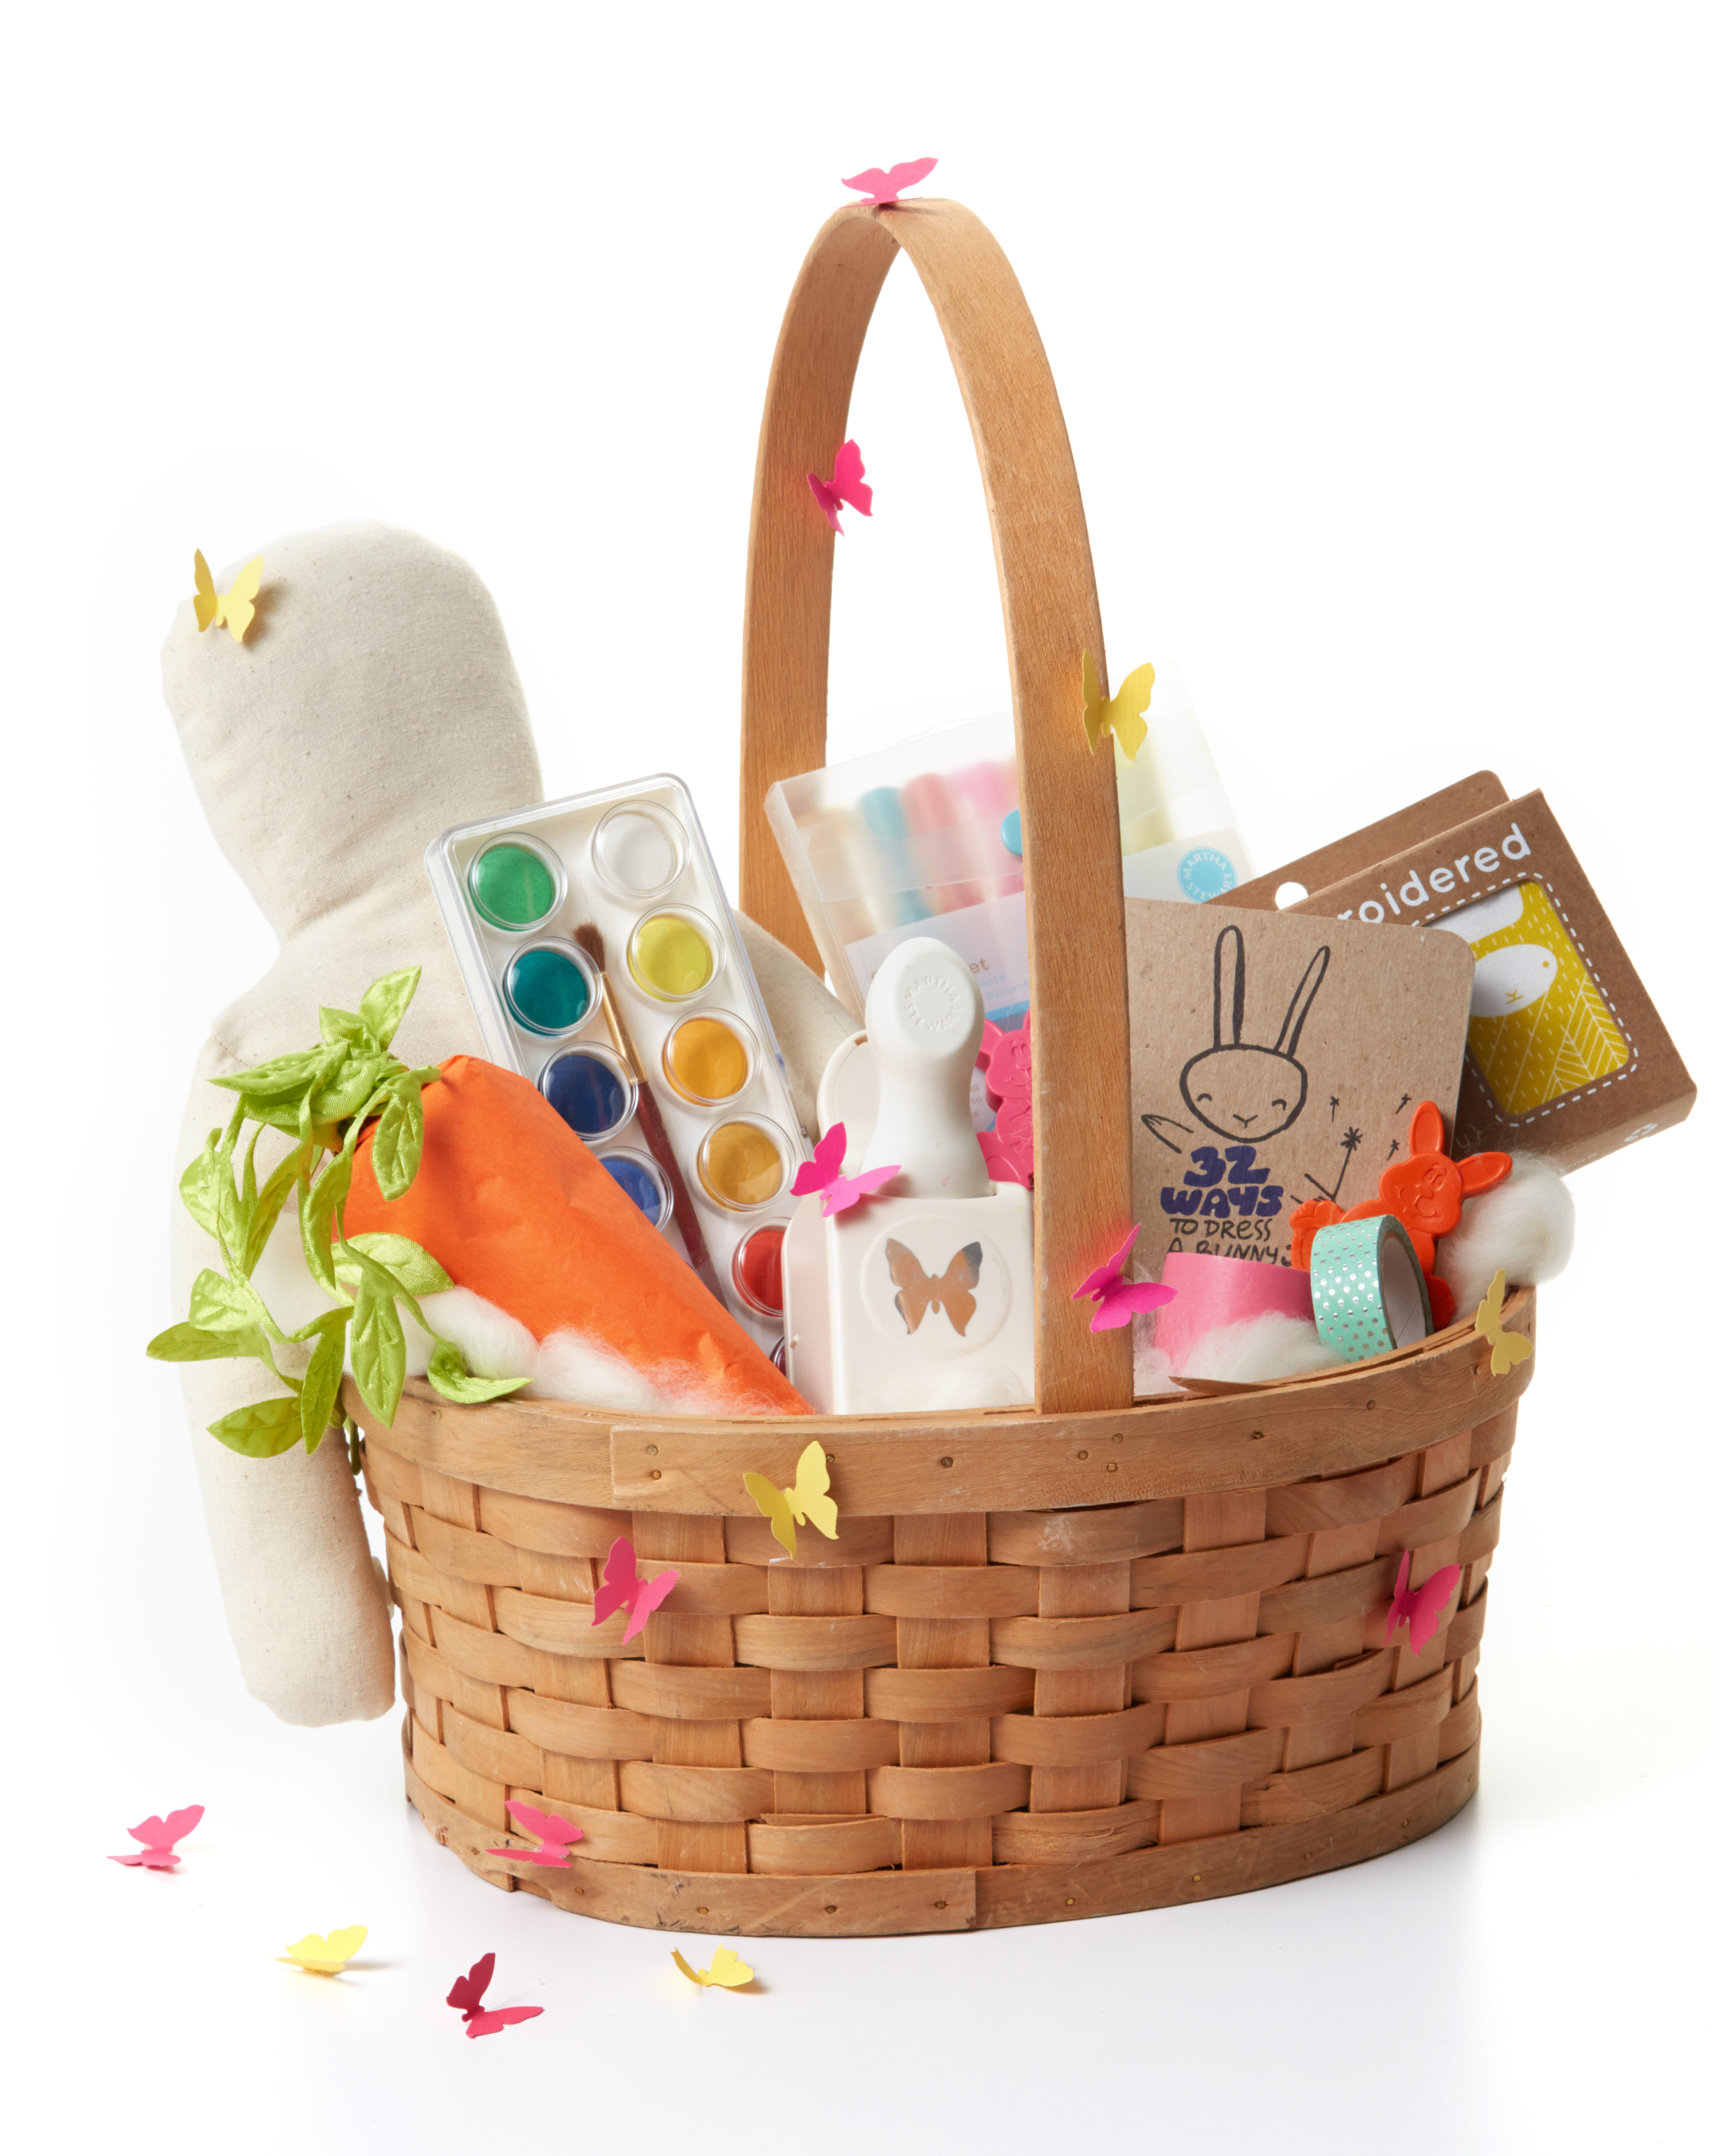 12 Creative and Colorful Easter Basket Ideas for Girls